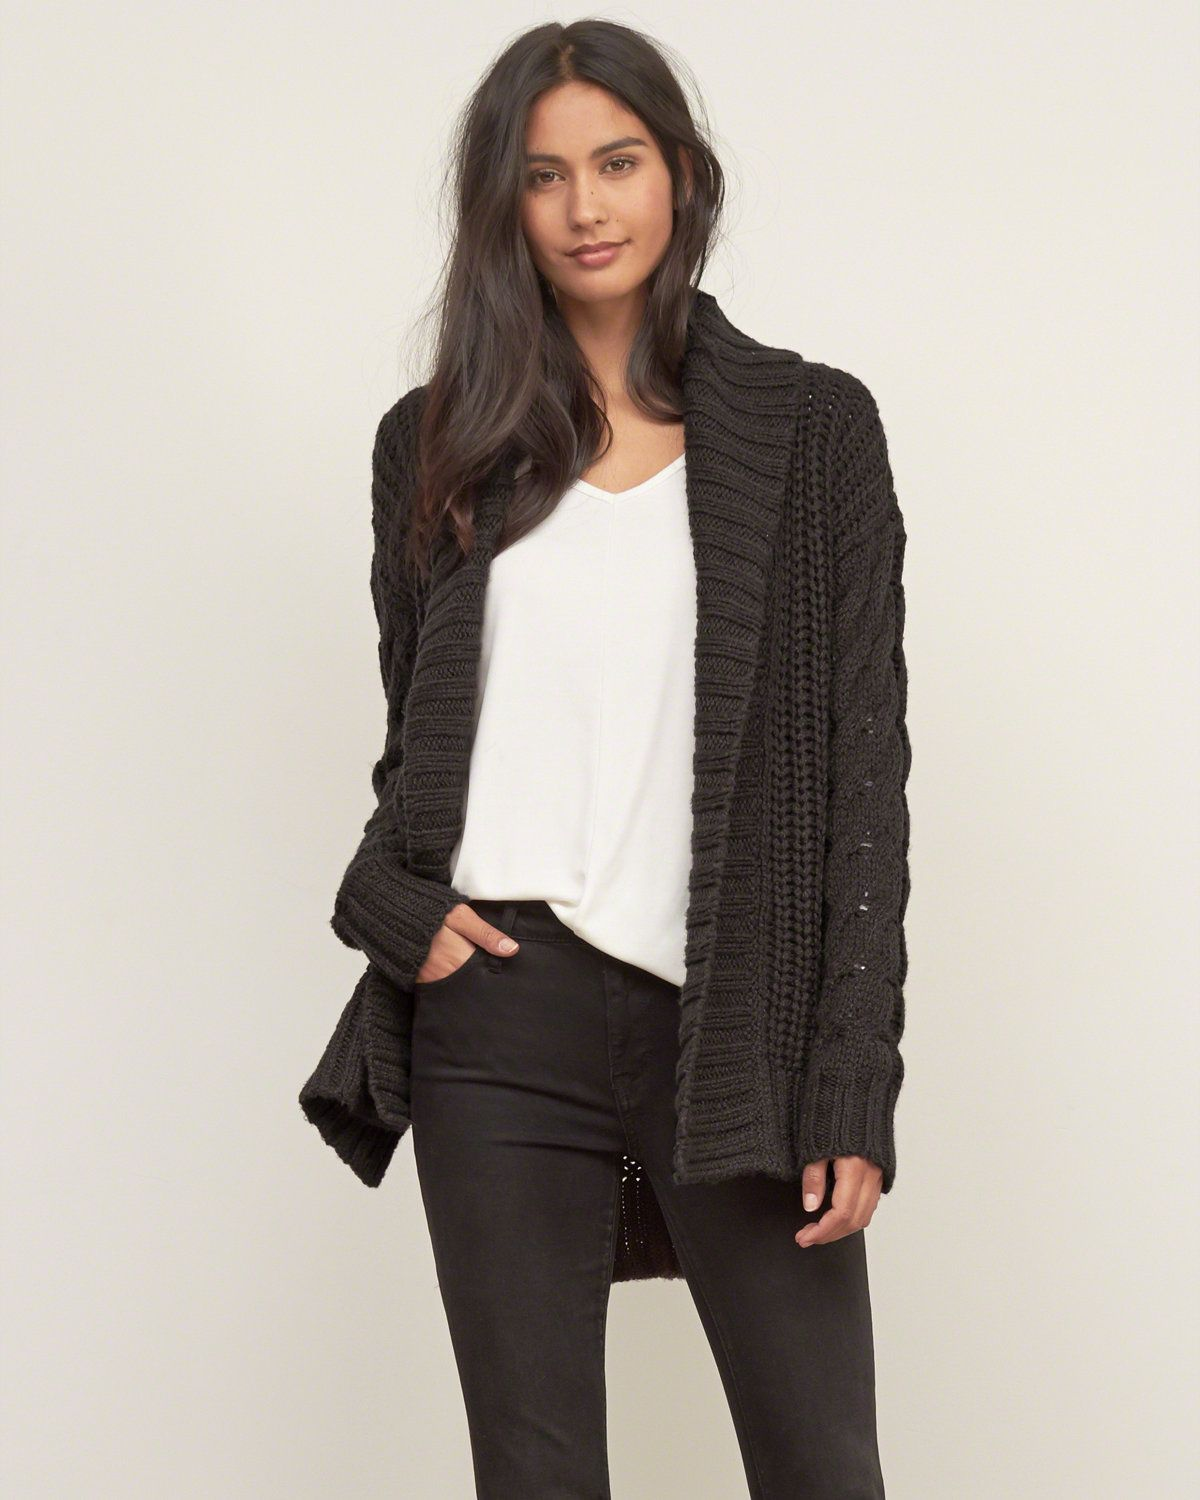 Womens Cable Boyfriend Cardigan | Swingy and flowy with an open ...